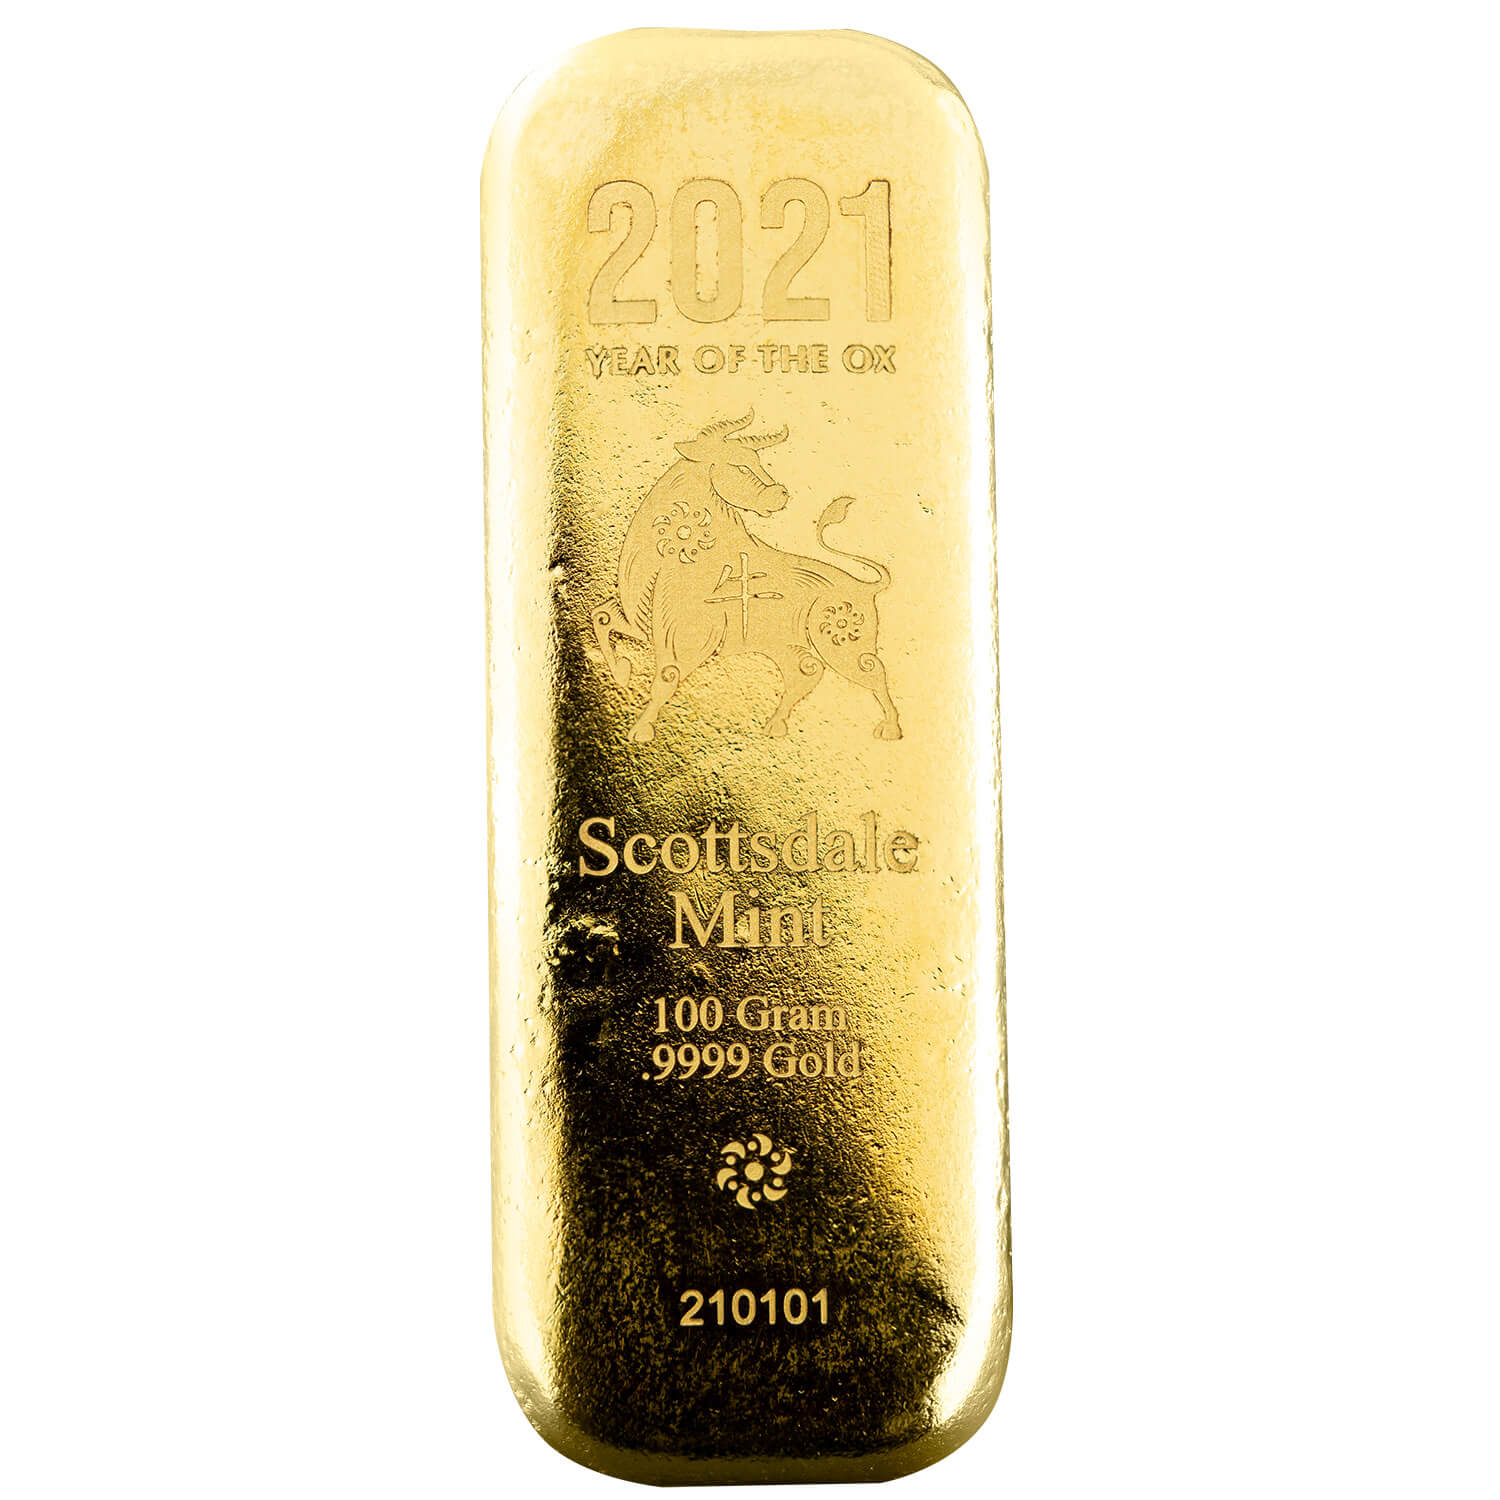 2020 Year Of The Rat 100 G Gold Bar (copy)